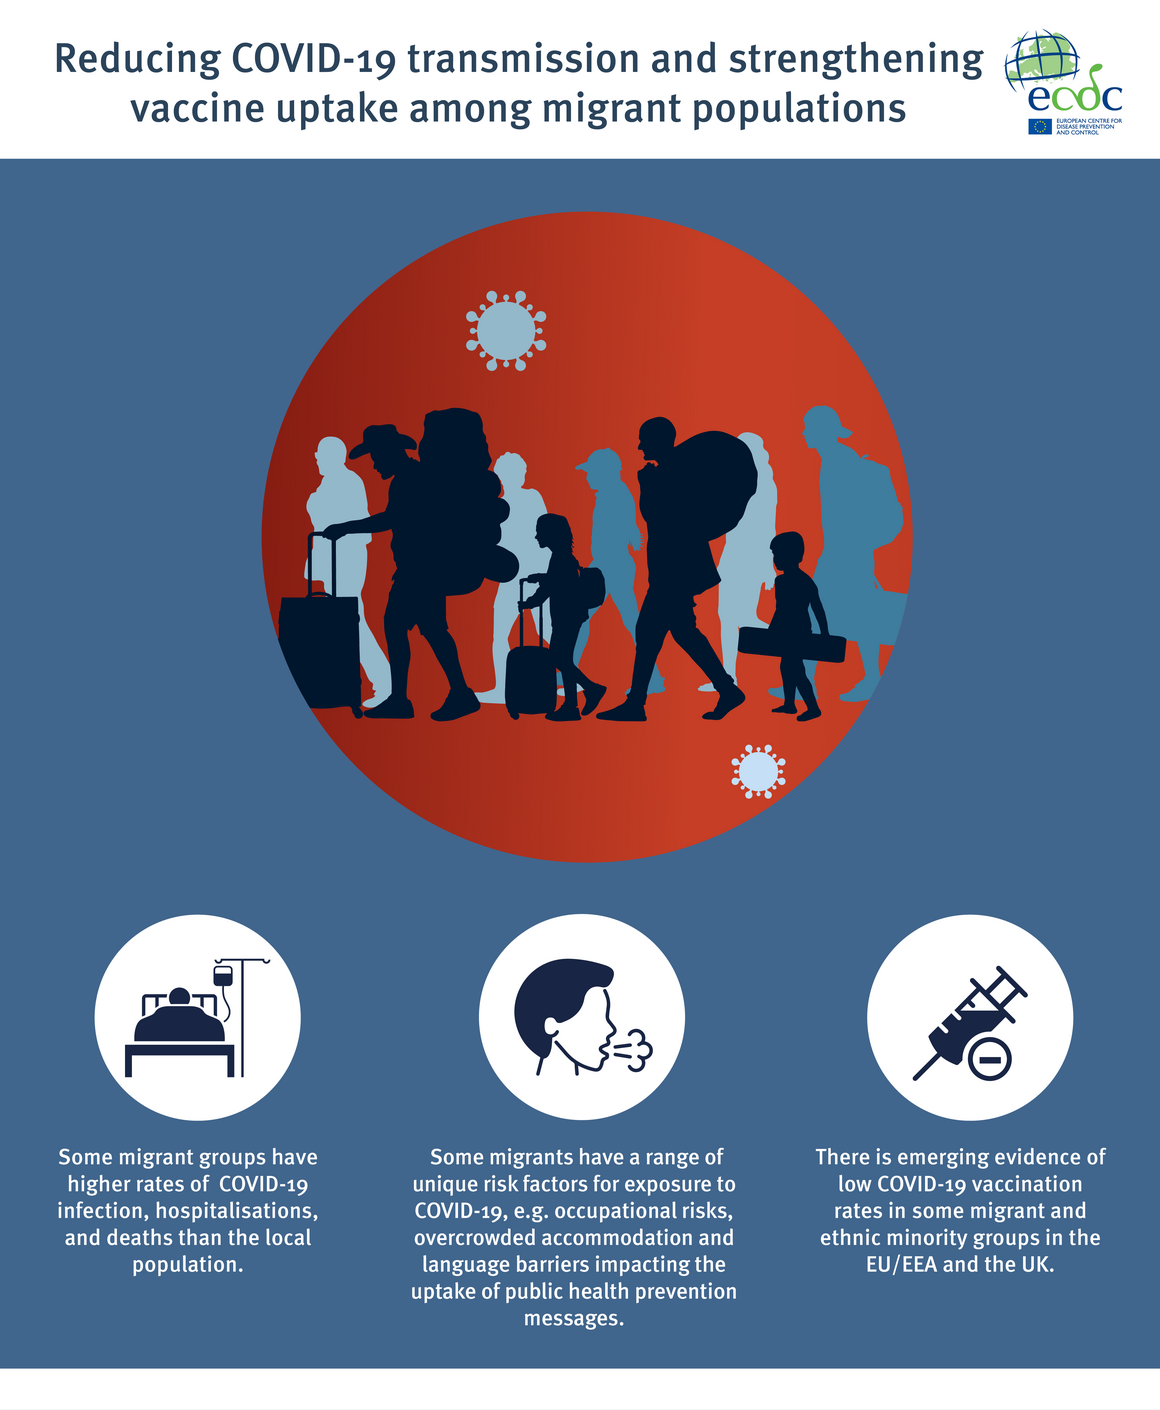 infographic: Findings on COVID-19 transmission and vaccine uptake among migrants